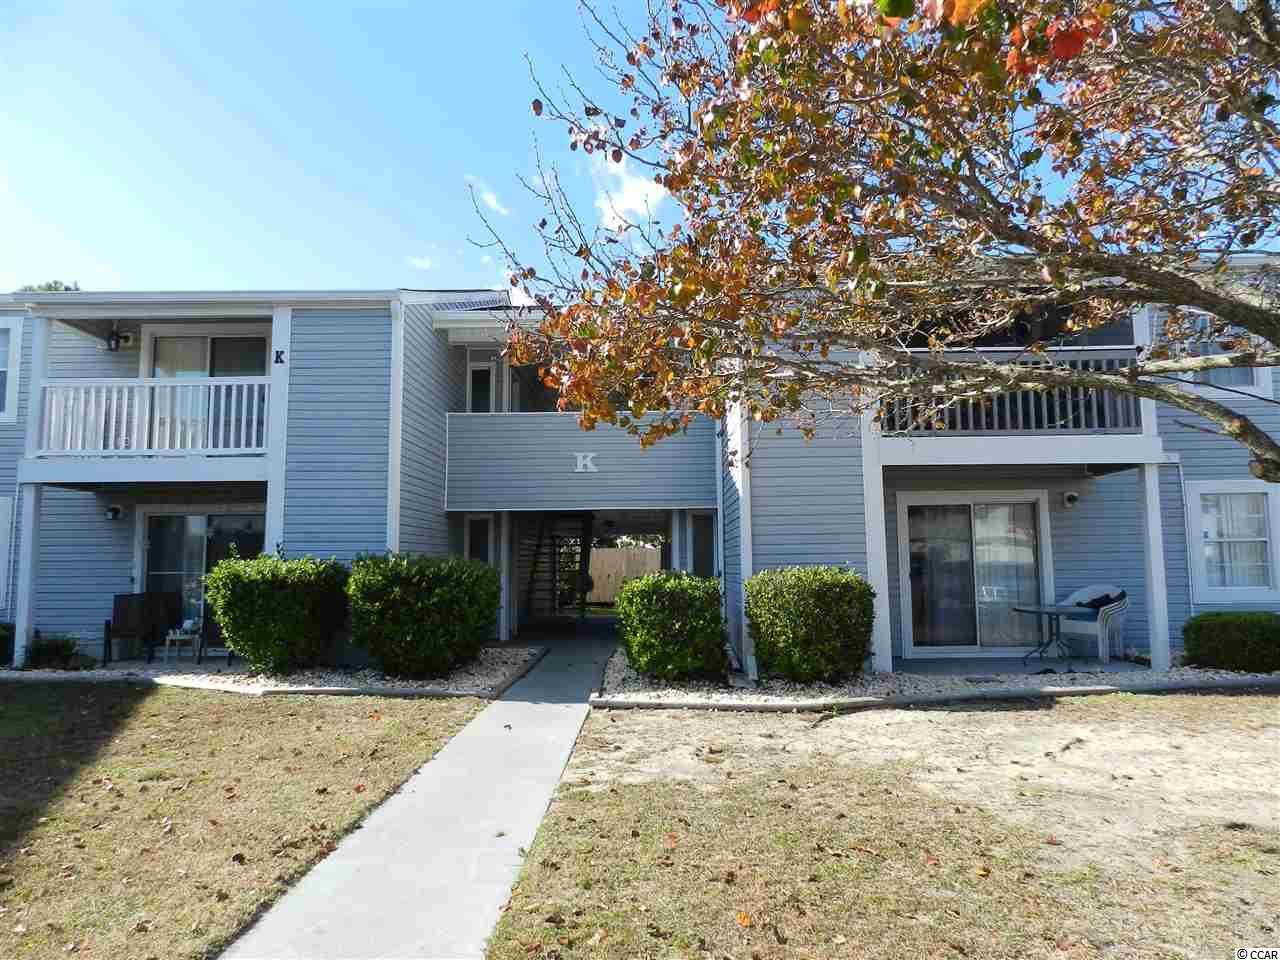 You will love this condo. 1 bedroom/ 1 bath condo approximately 1 mile from the beach. Fully applianced with an attached storage unit. Pool on premises. Conveniently close to restaurants, shops, and the beach. HOA dues are very low.